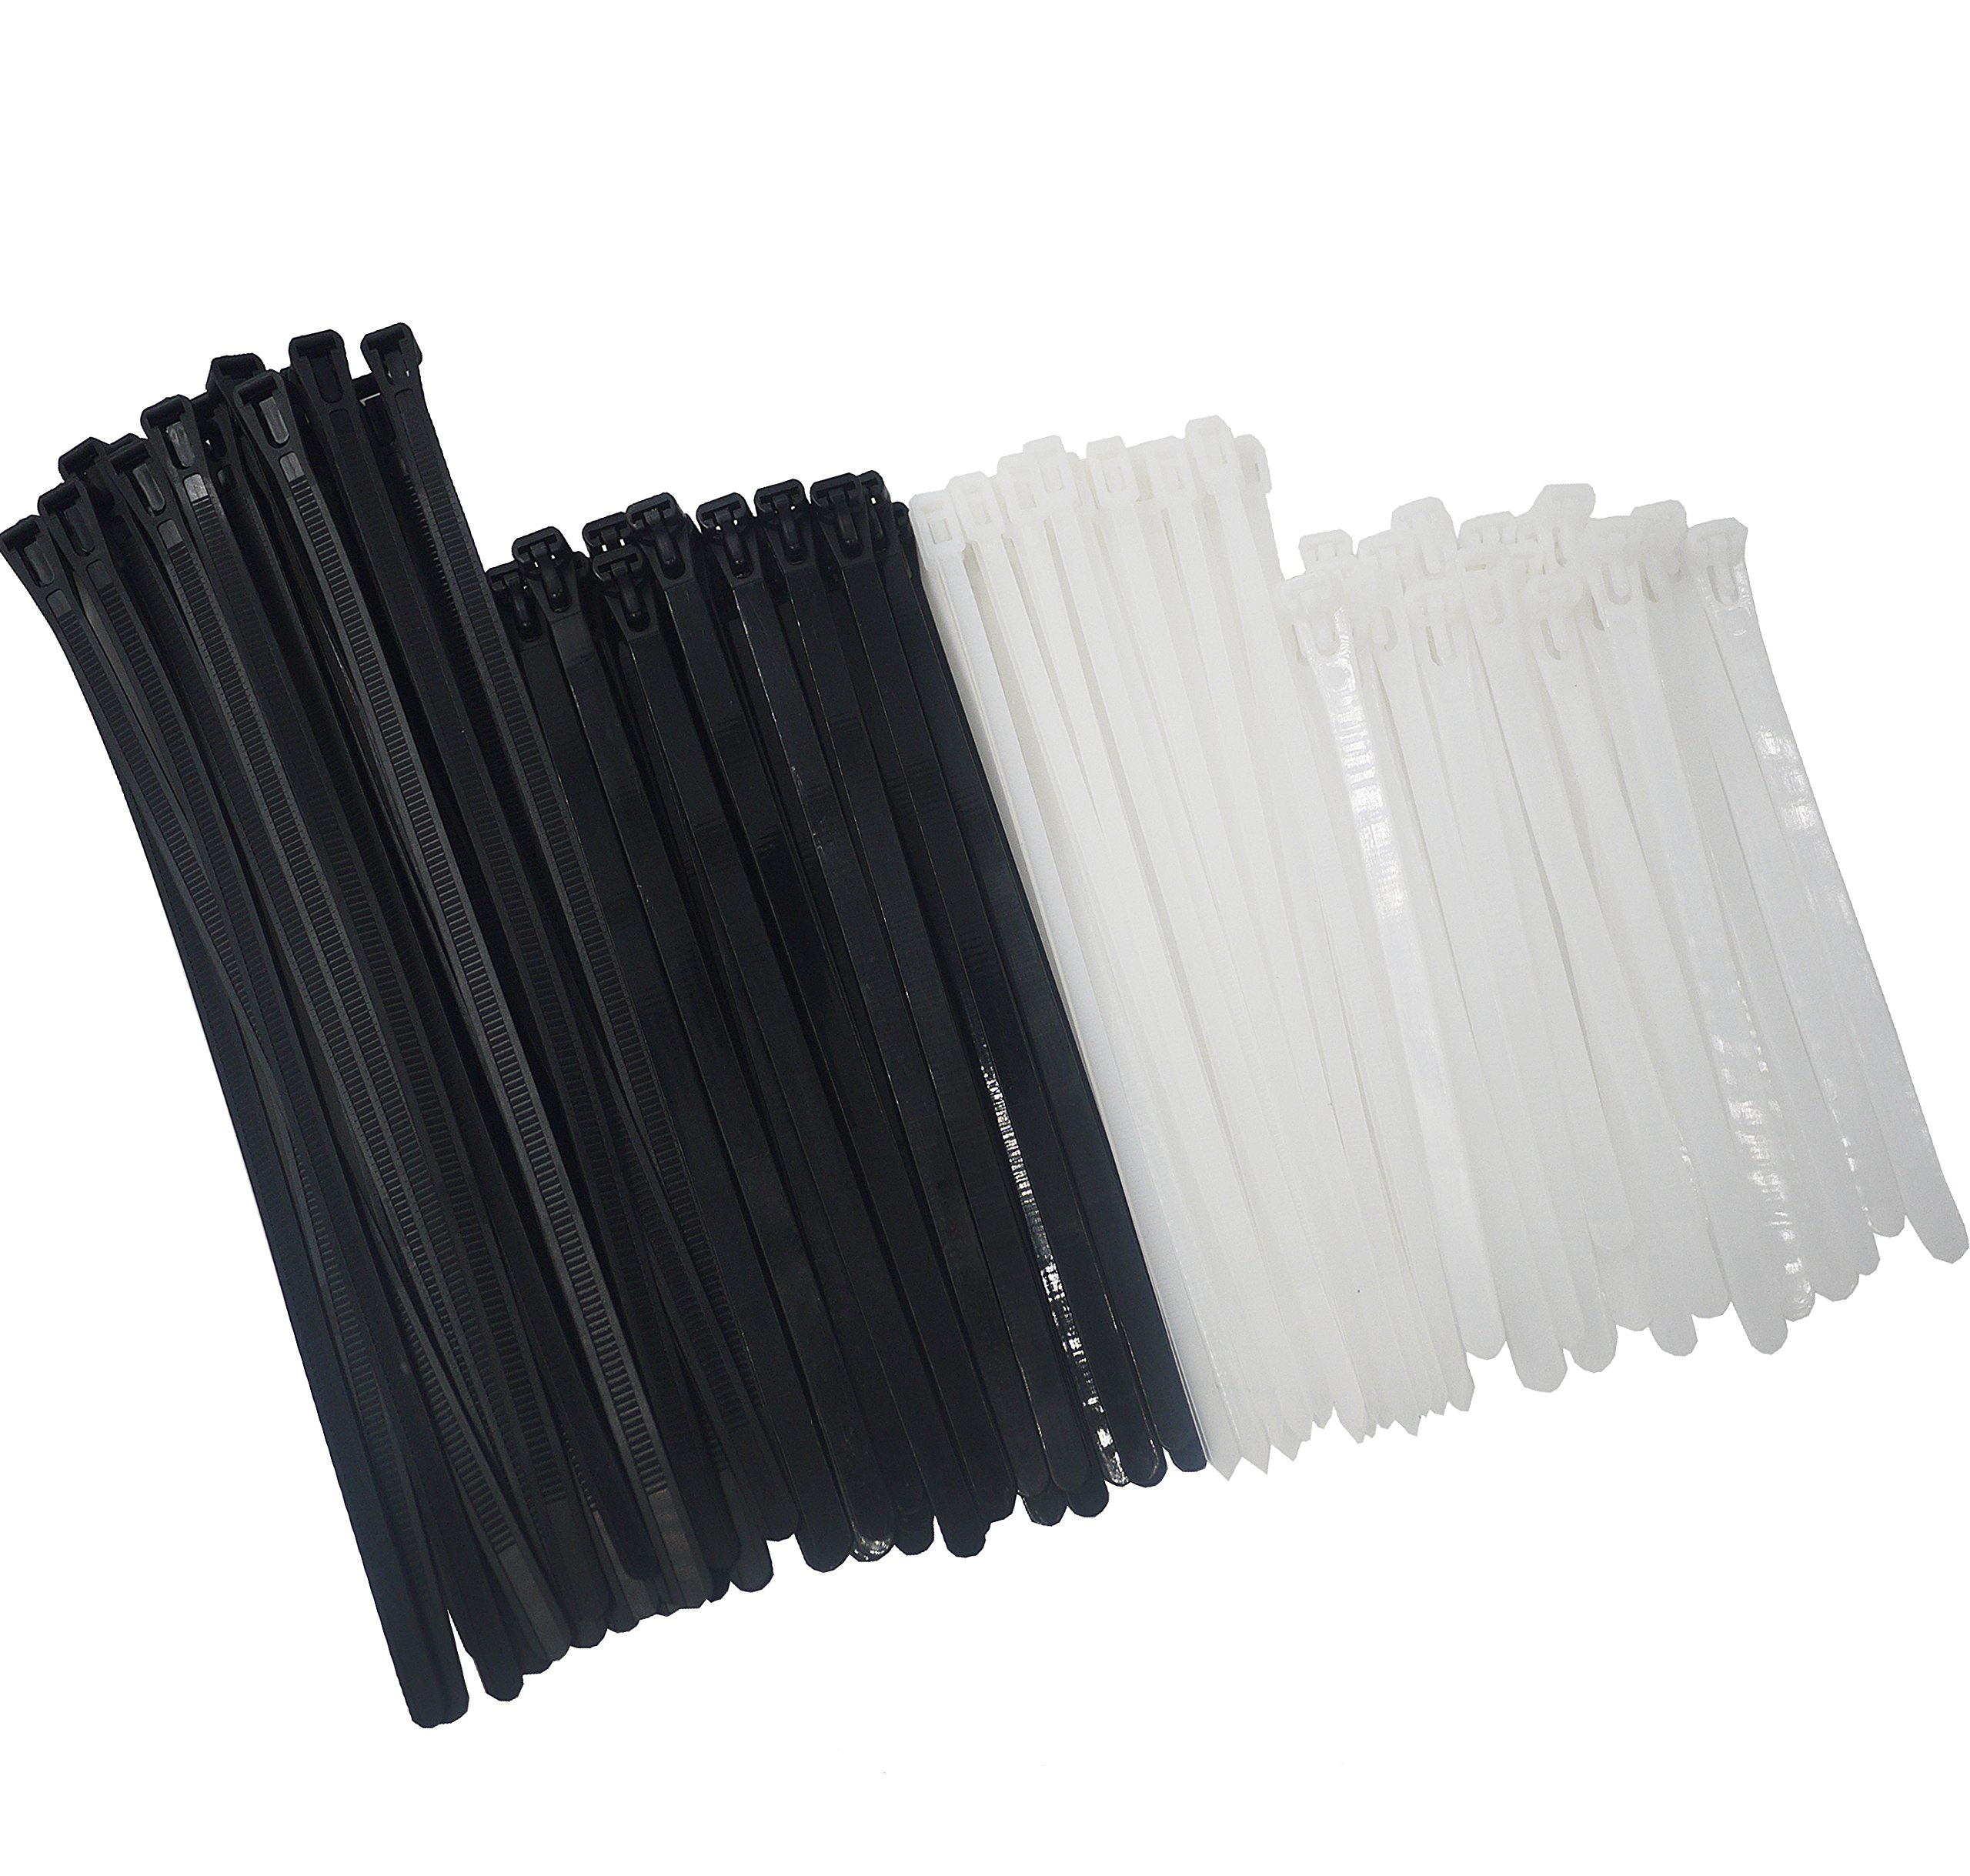 "Plastic Cable Zip Ties Heavy Duty Nylon Wrap Wire 100pcs  4/"" 8/"" 12/"" cable ties"